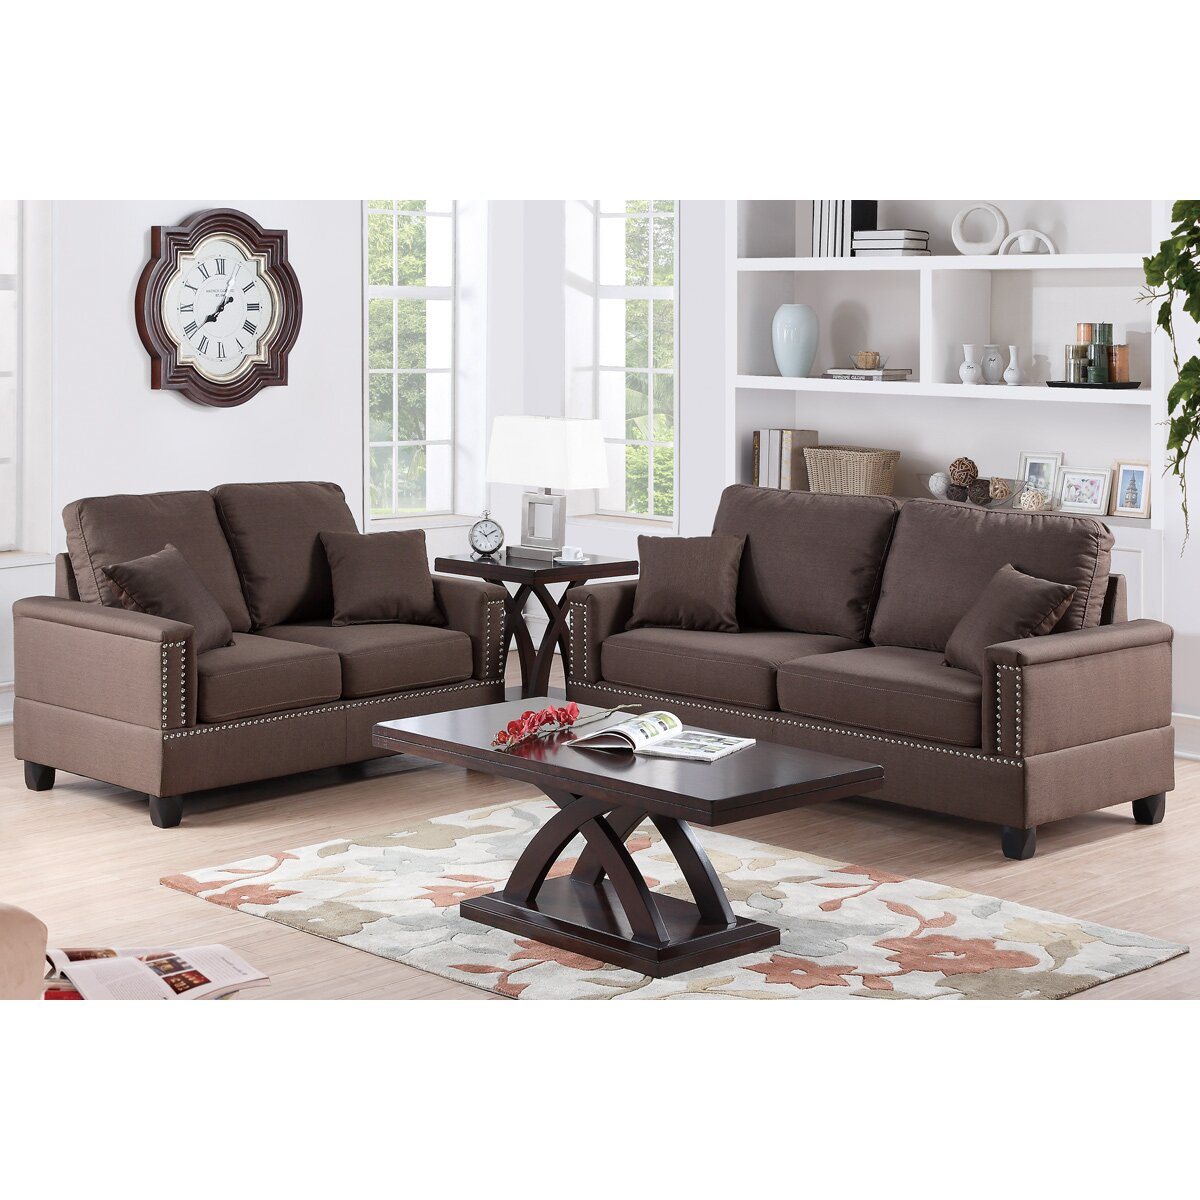 Poundex bobkona norris 2 piece sofa and loveseat set wayfair for 2 piece furniture set